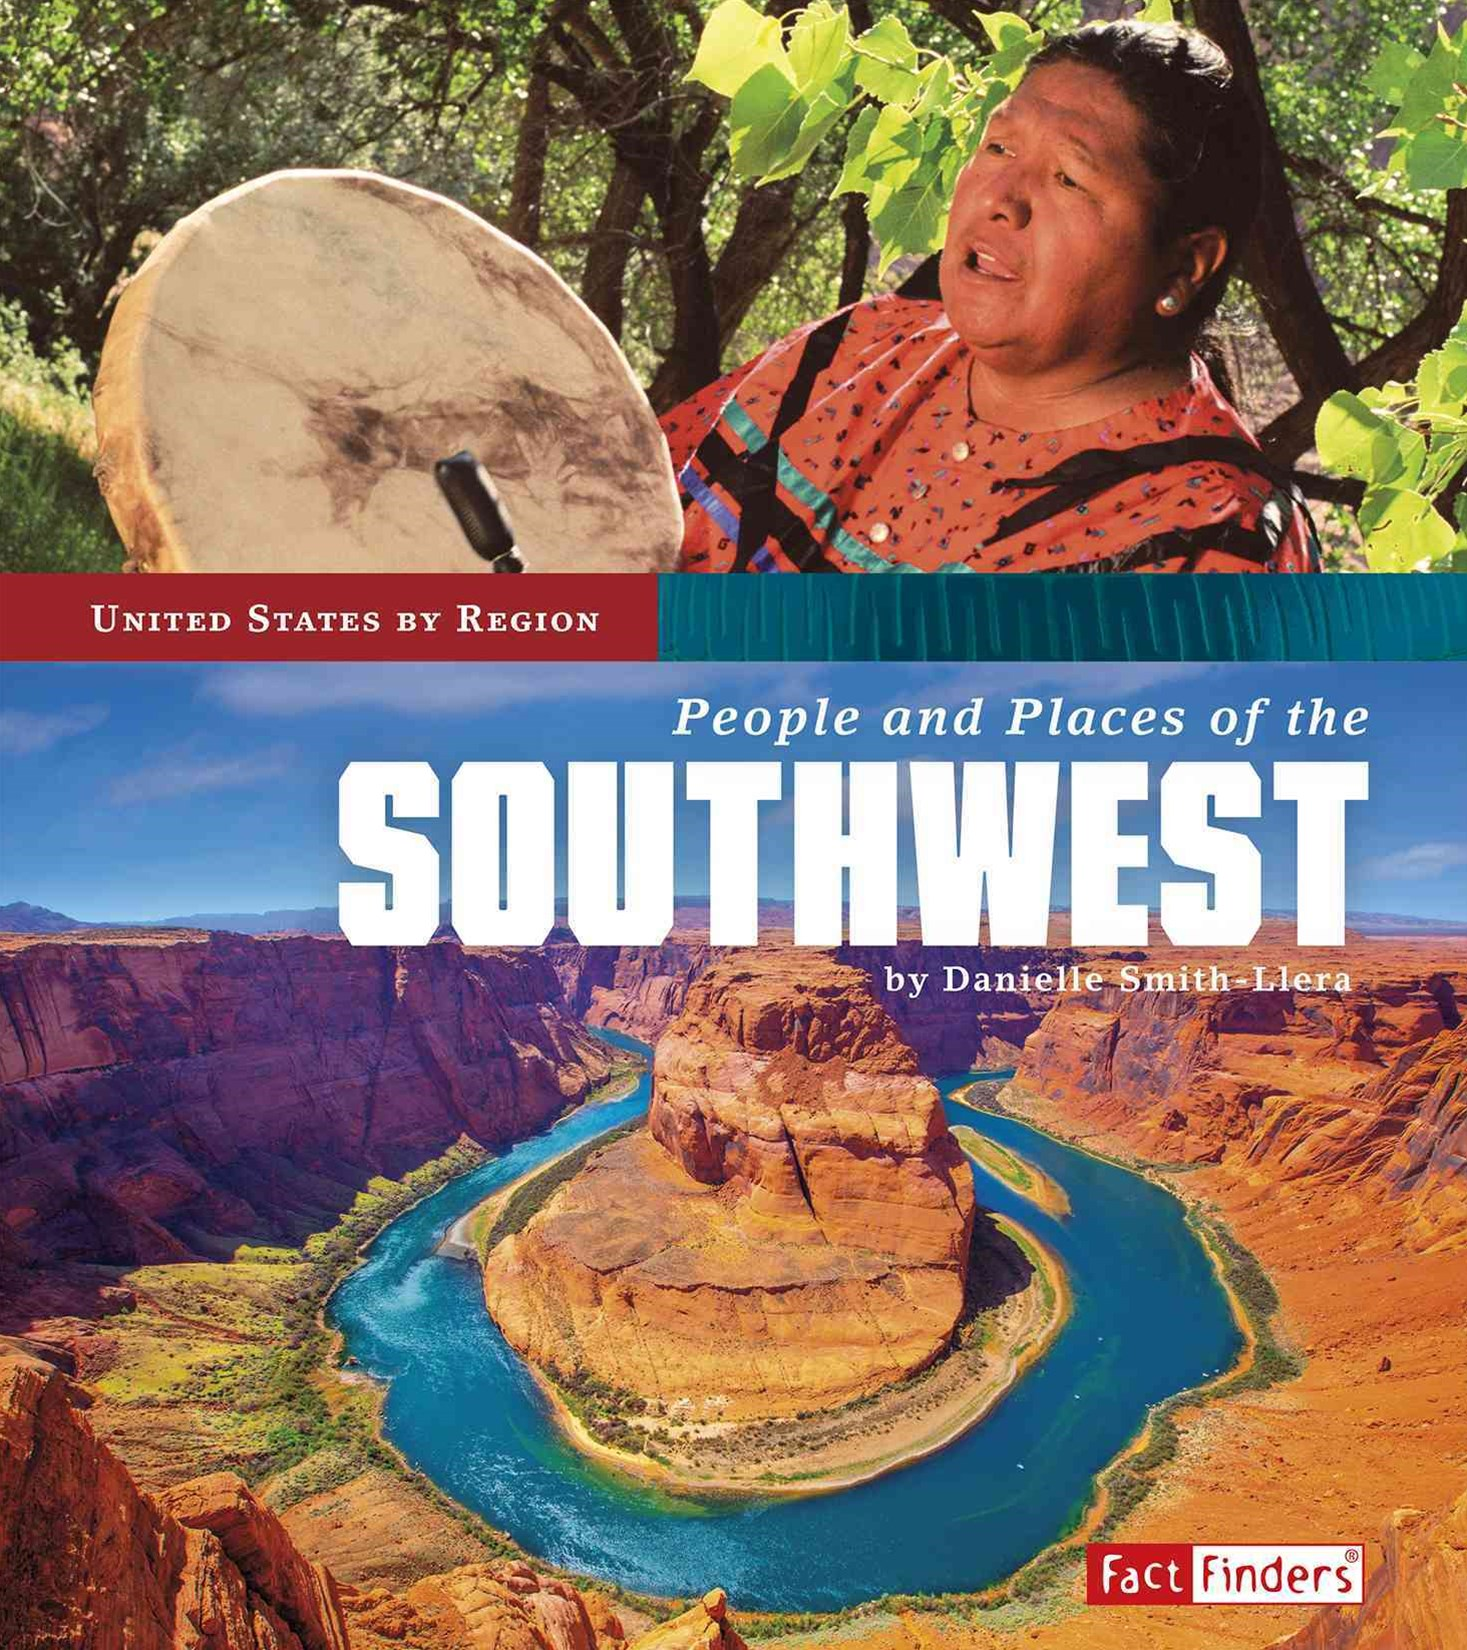 People and Places of the Southwest